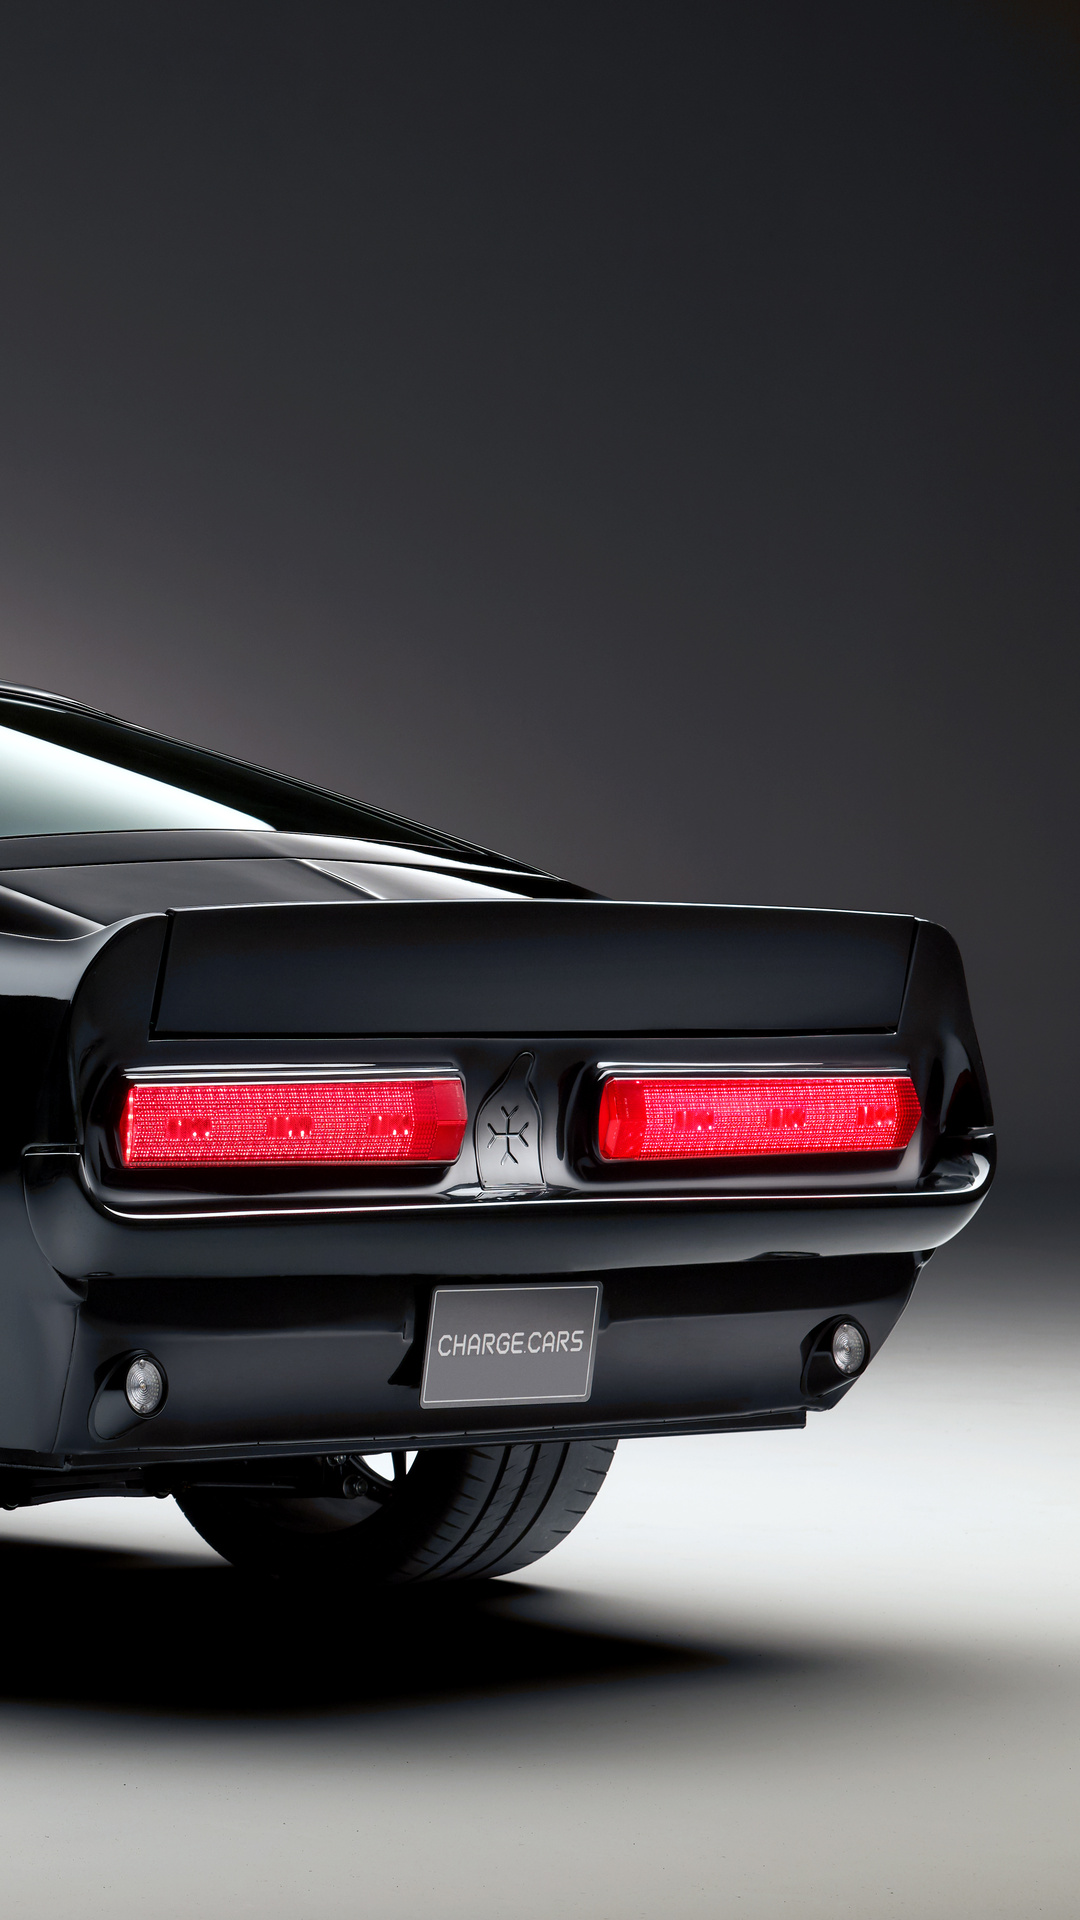 1967-charge-cars-ford-mustang-rear-view-8k-i4.jpg